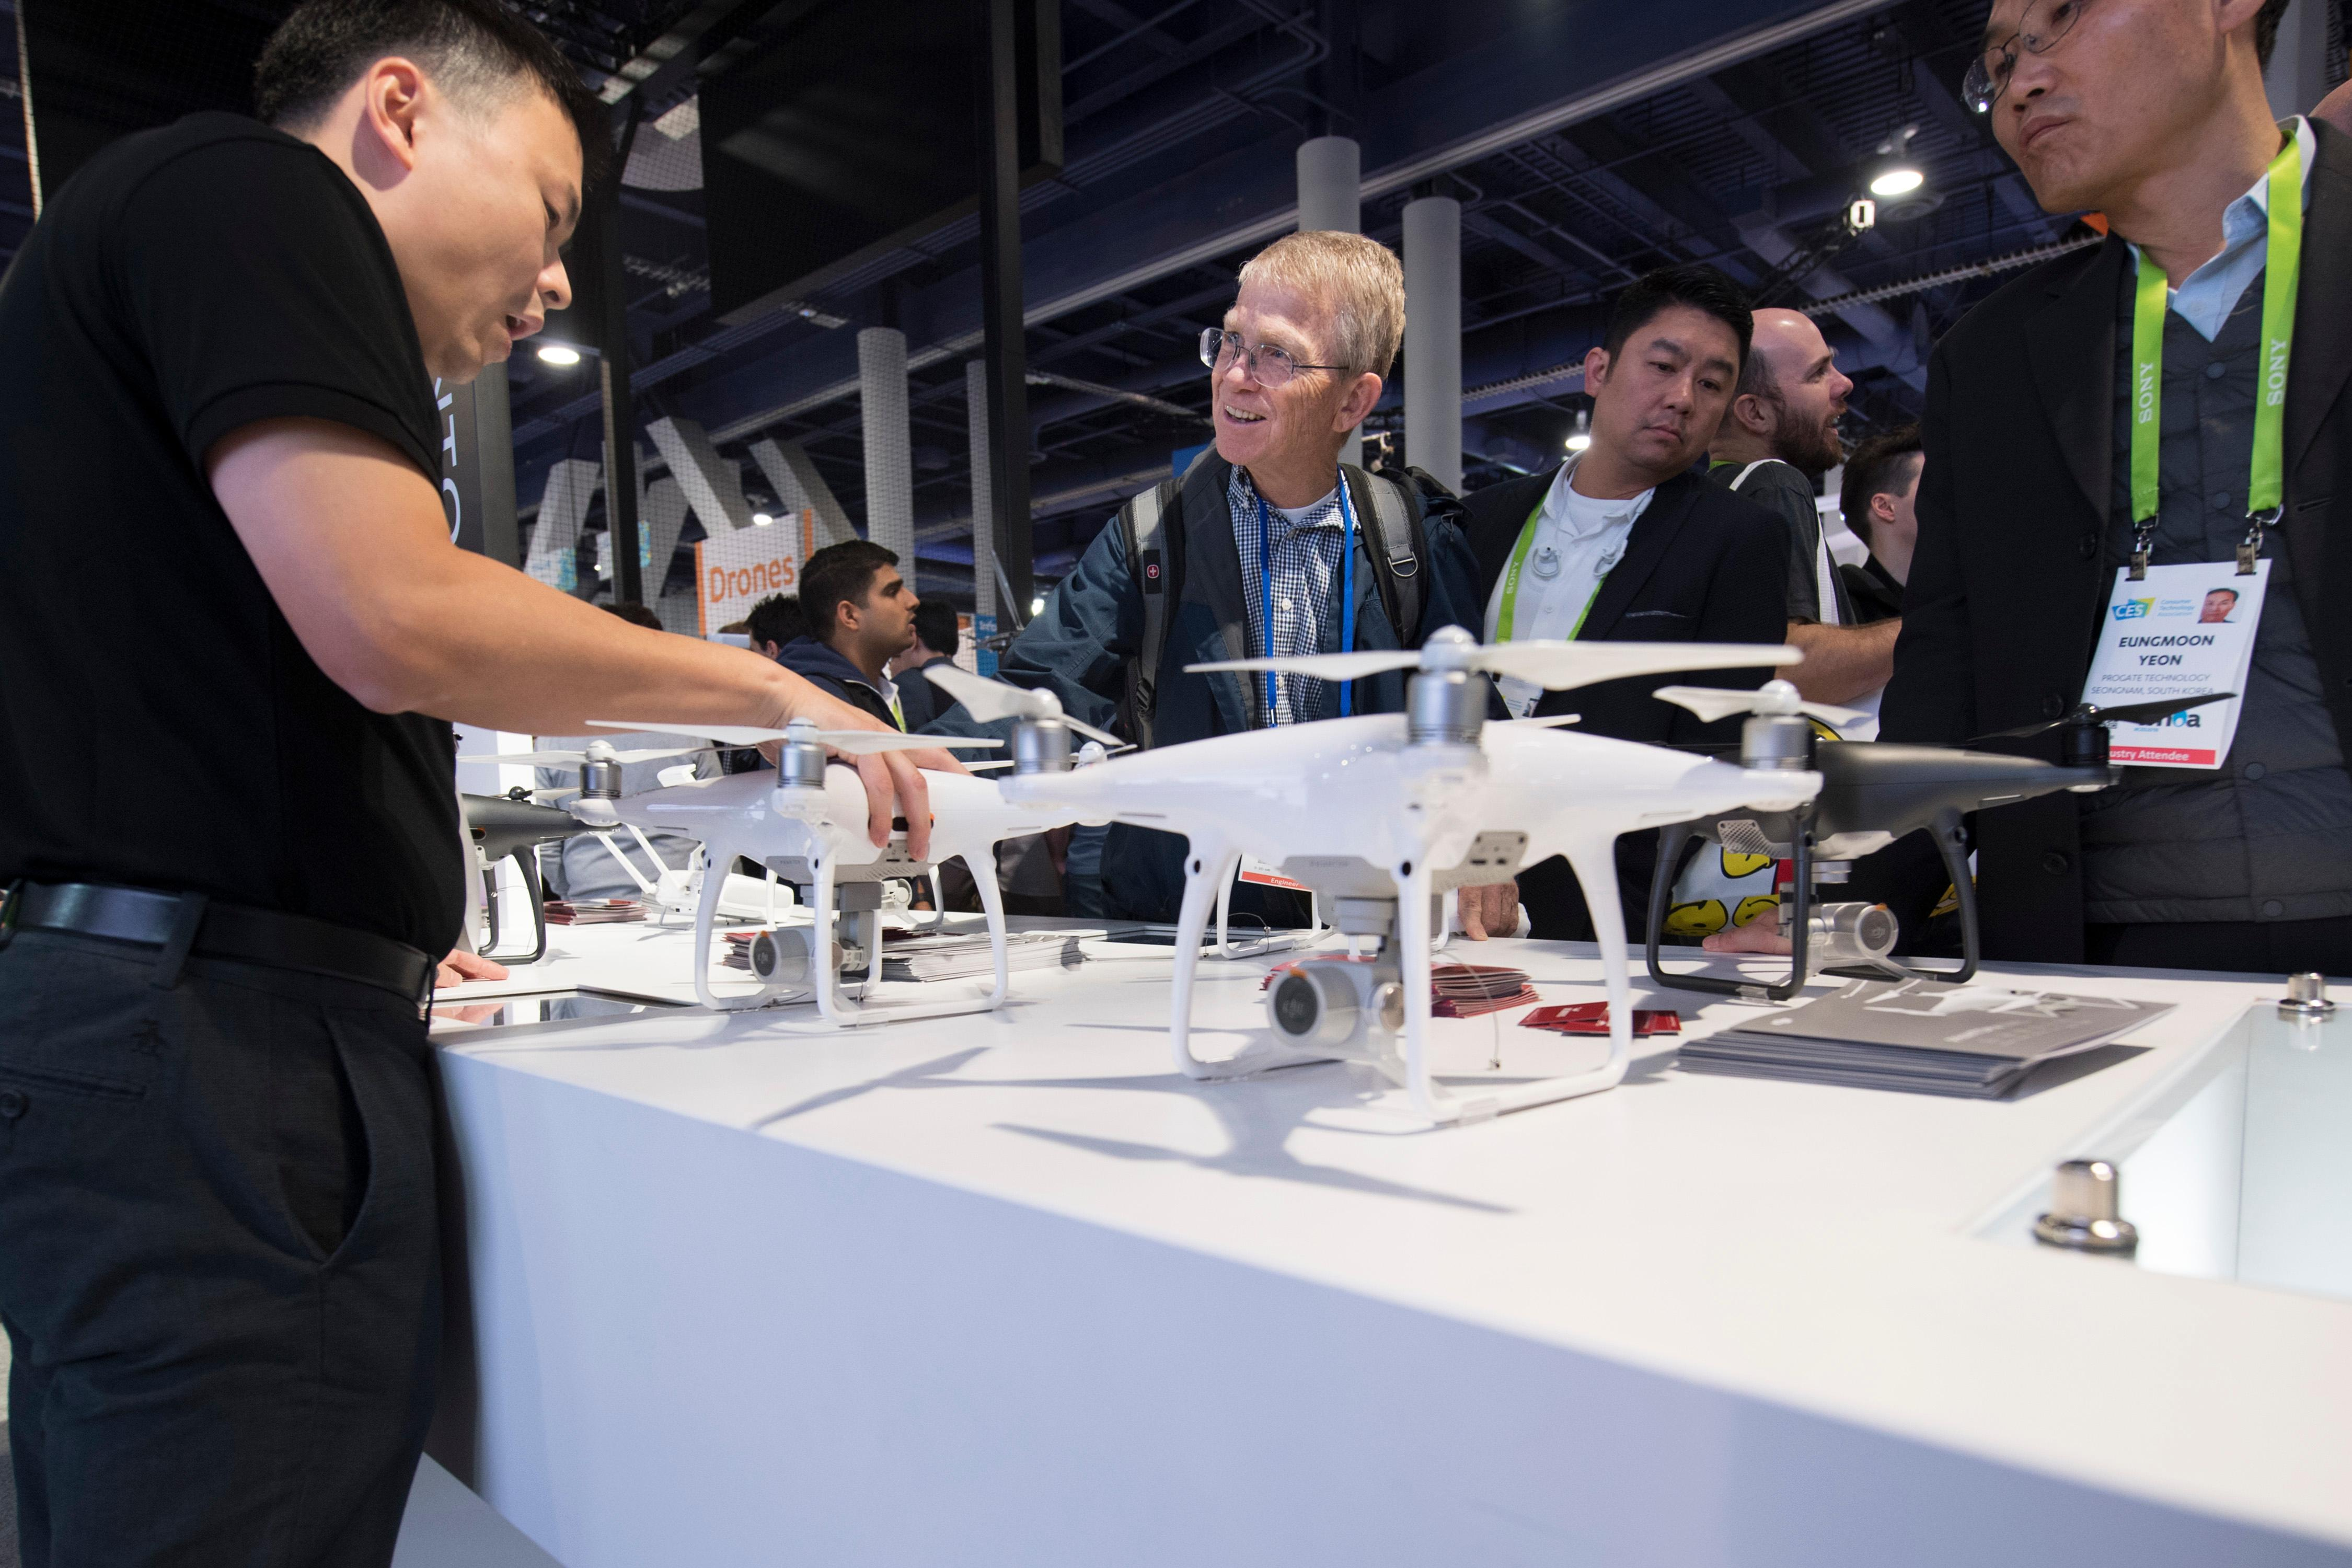 The Phantom 4 drone from DJI is demonstrated during the second day of CES Wednesday, January 10, 2018, at the Las Vegas Convention Center. CREDIT: Sam Morris/Las Vegas News Bureau